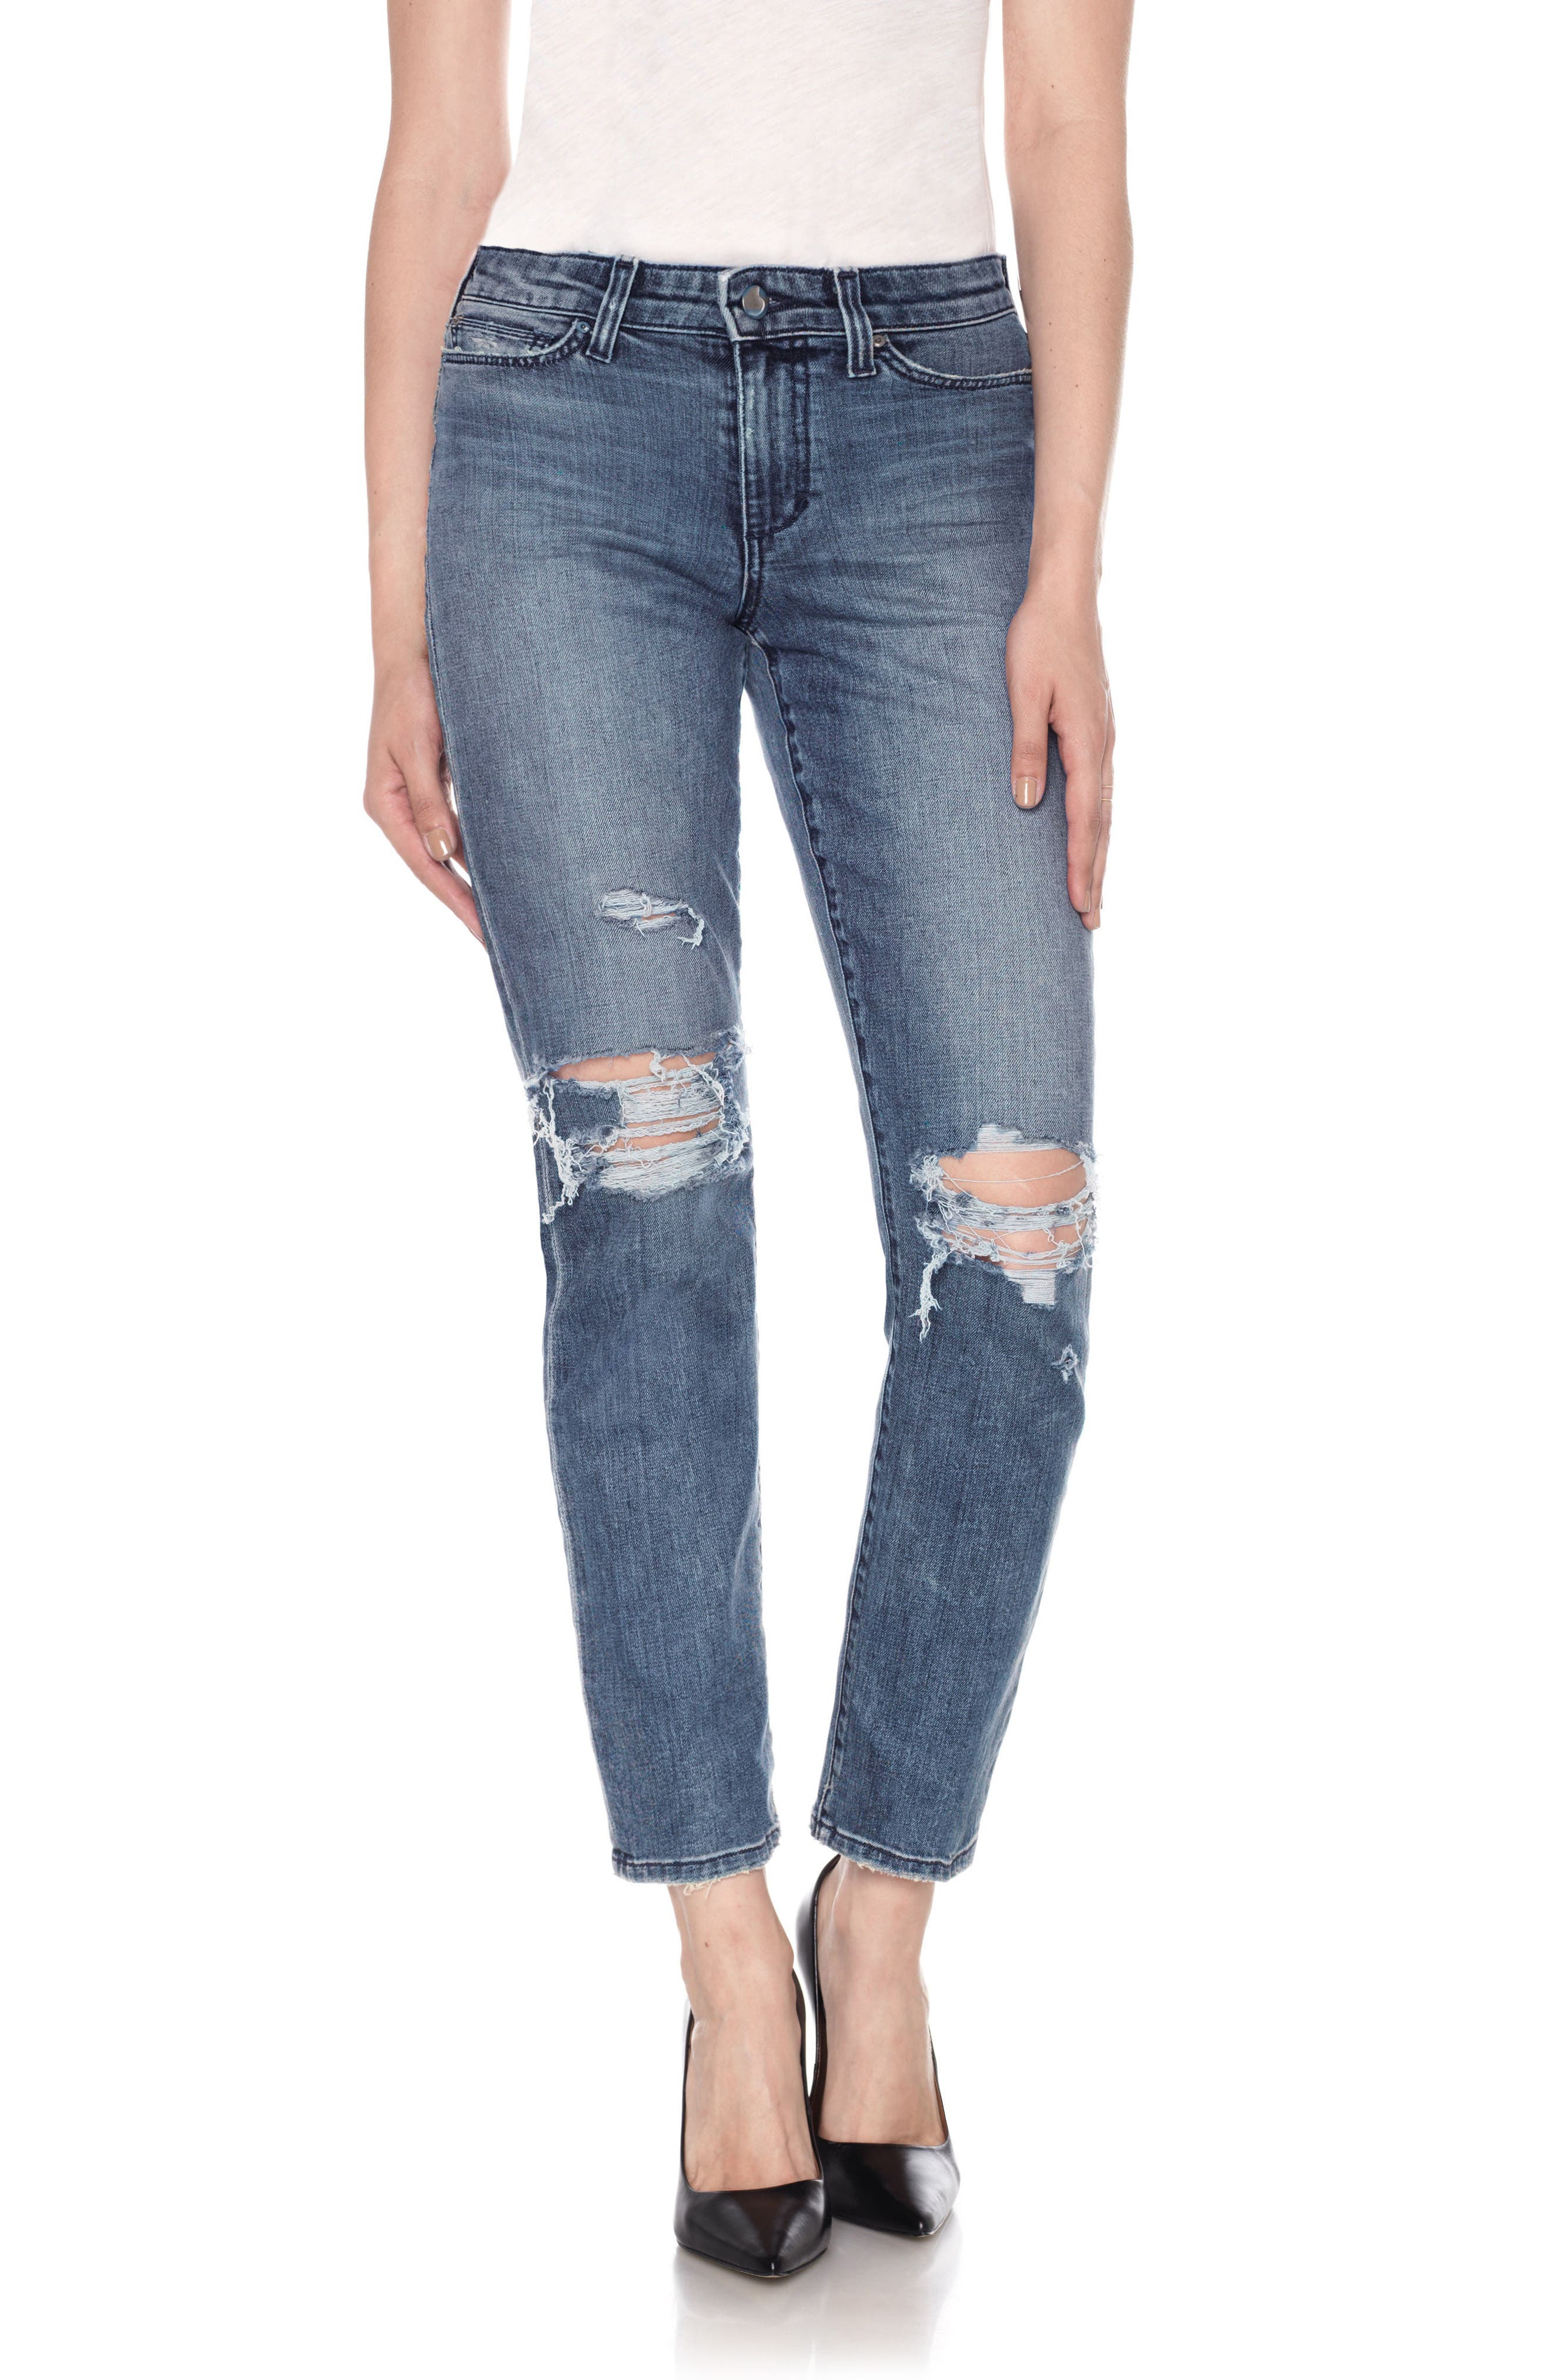 Kass Ankle Skinny Jeans,                         Main,                         color, Shanti